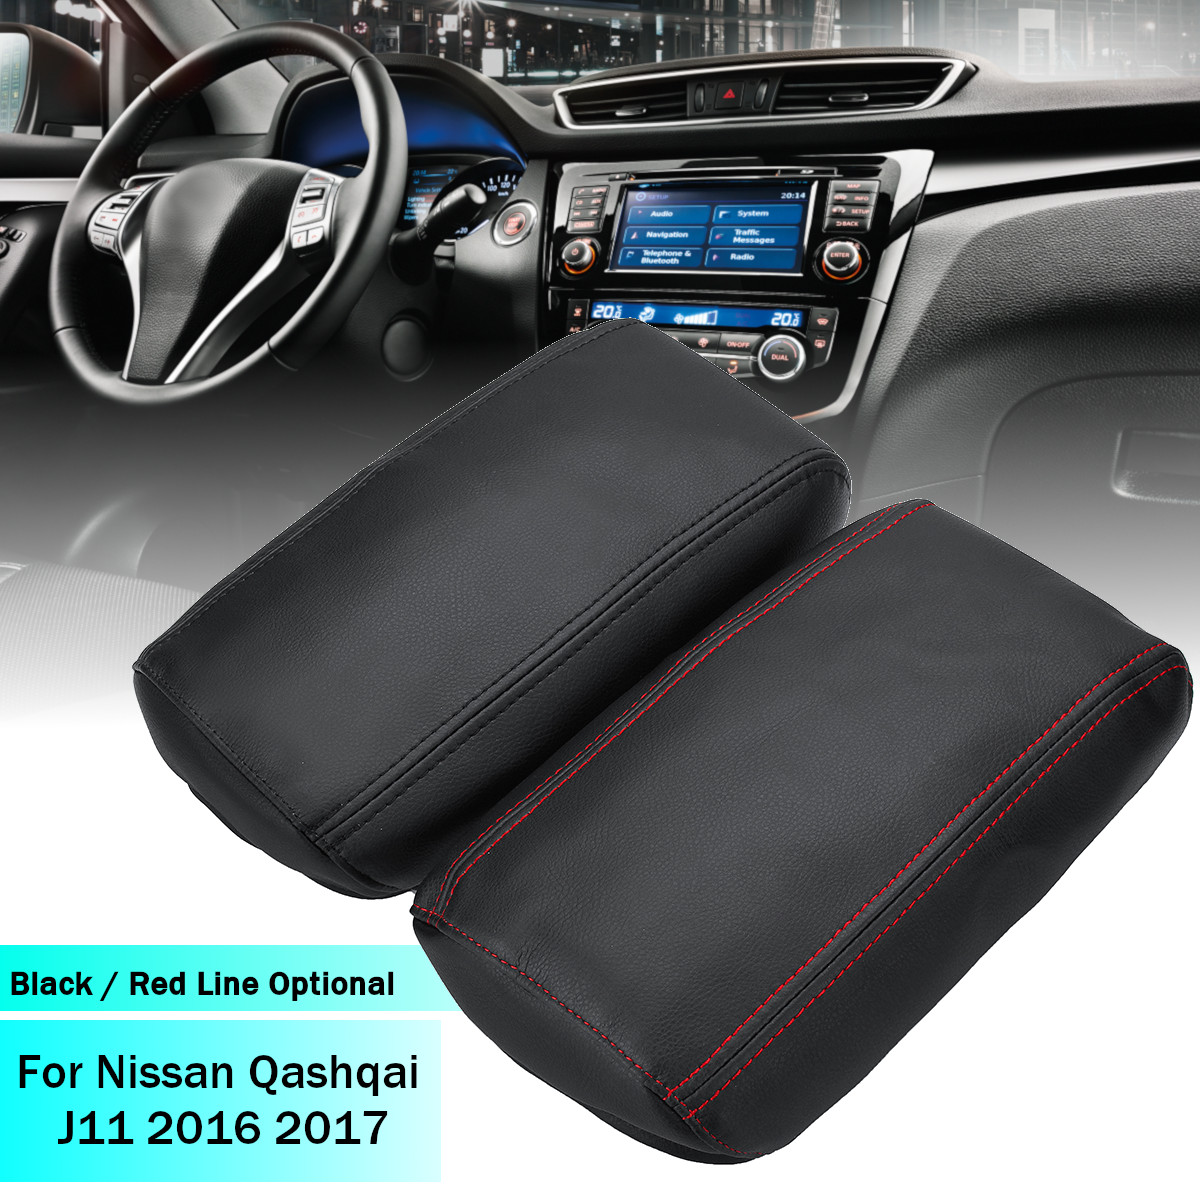 Car Central Armrest Box Protective Cover Artificial Leather Covers For Nissan Qashqai J11 2016 2017 2018